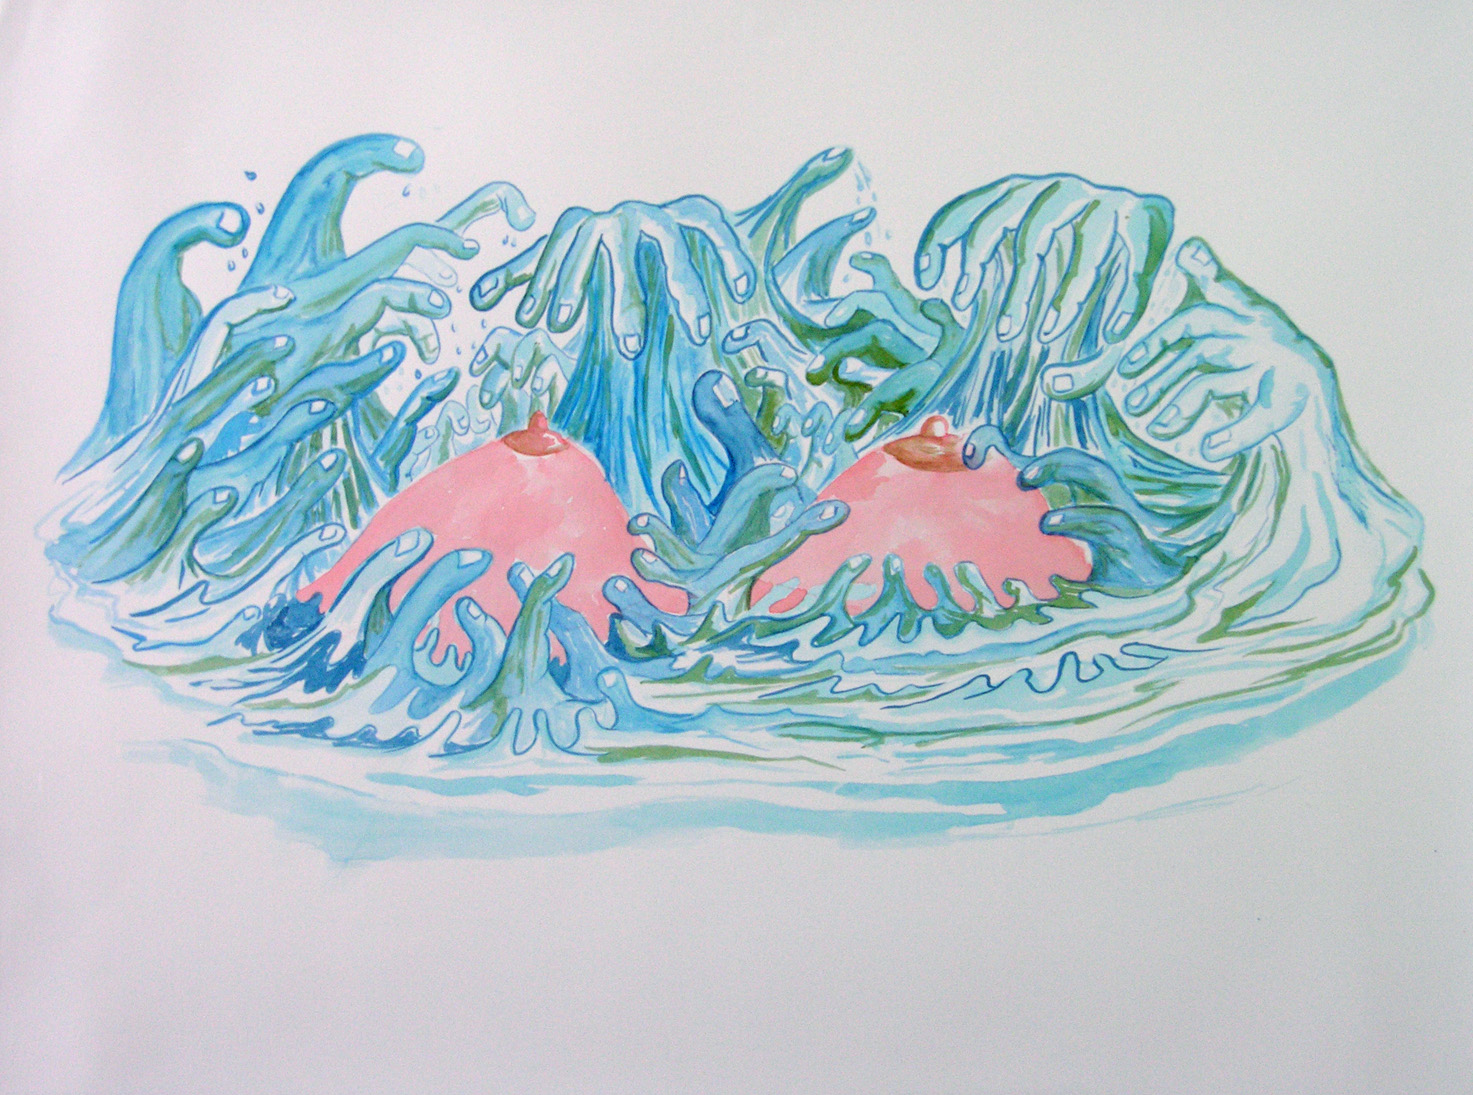 """île de Sein"" by Camille Goujon, selected in 2005"